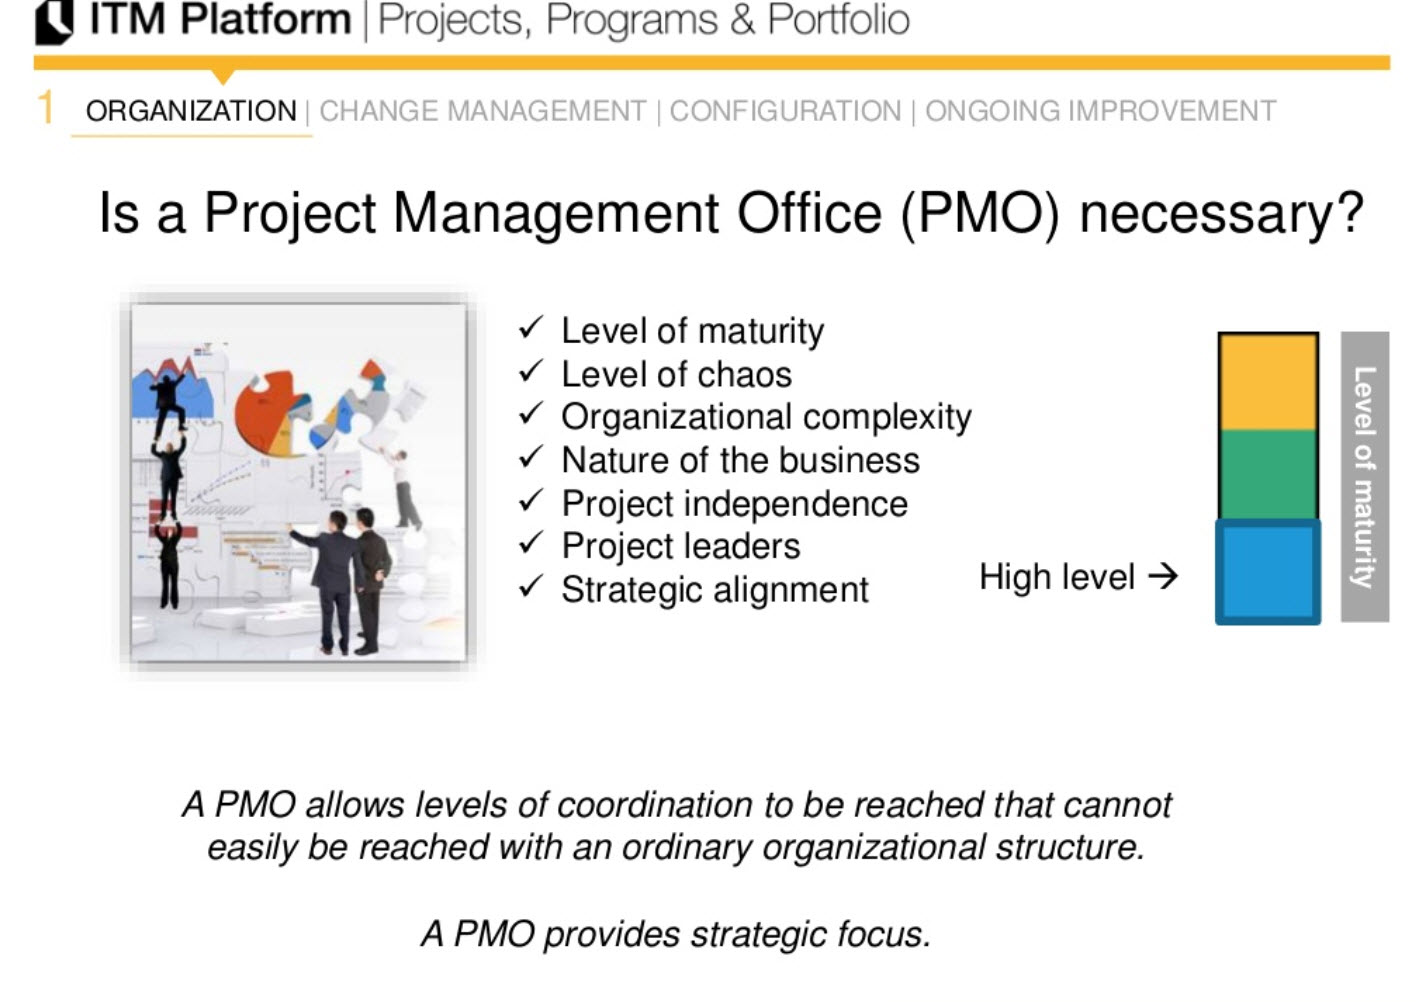 Is a project management office (PMO) necessary?